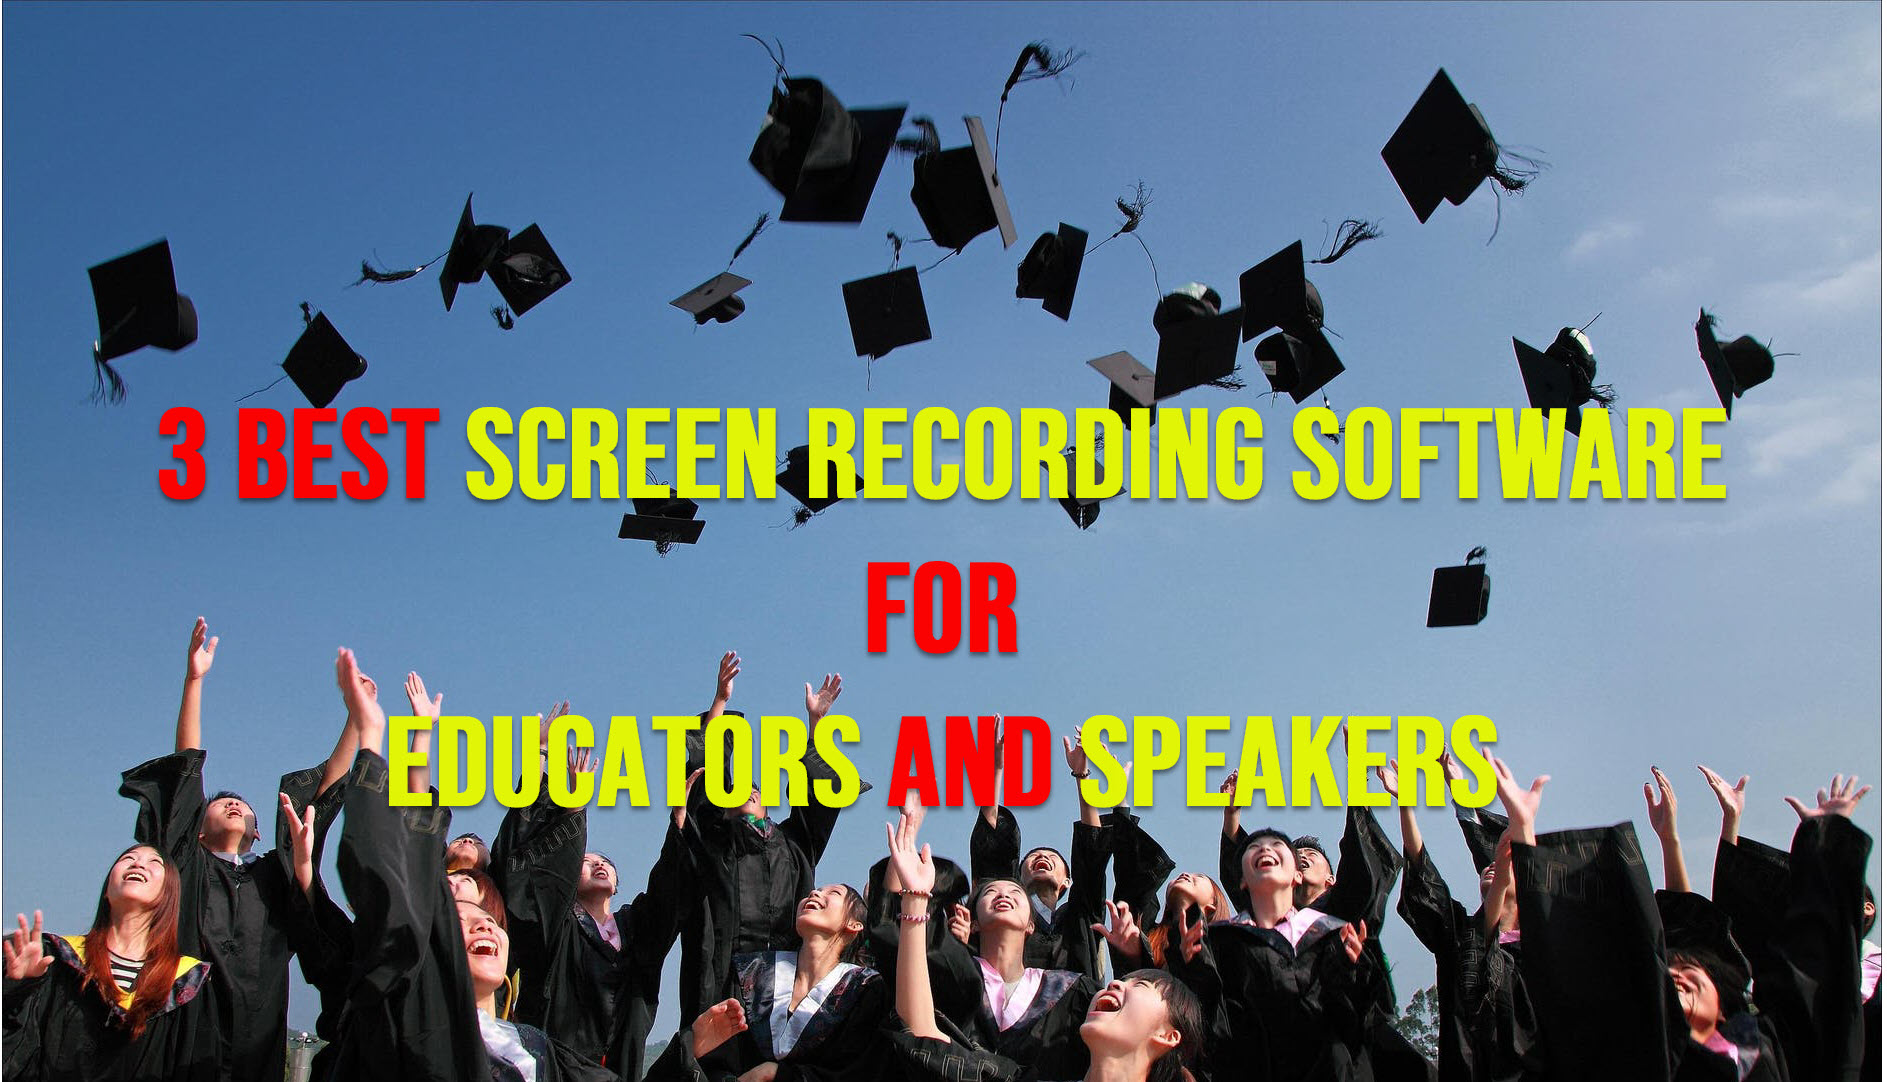 Best Screen Recording Software For Educators and Speakers